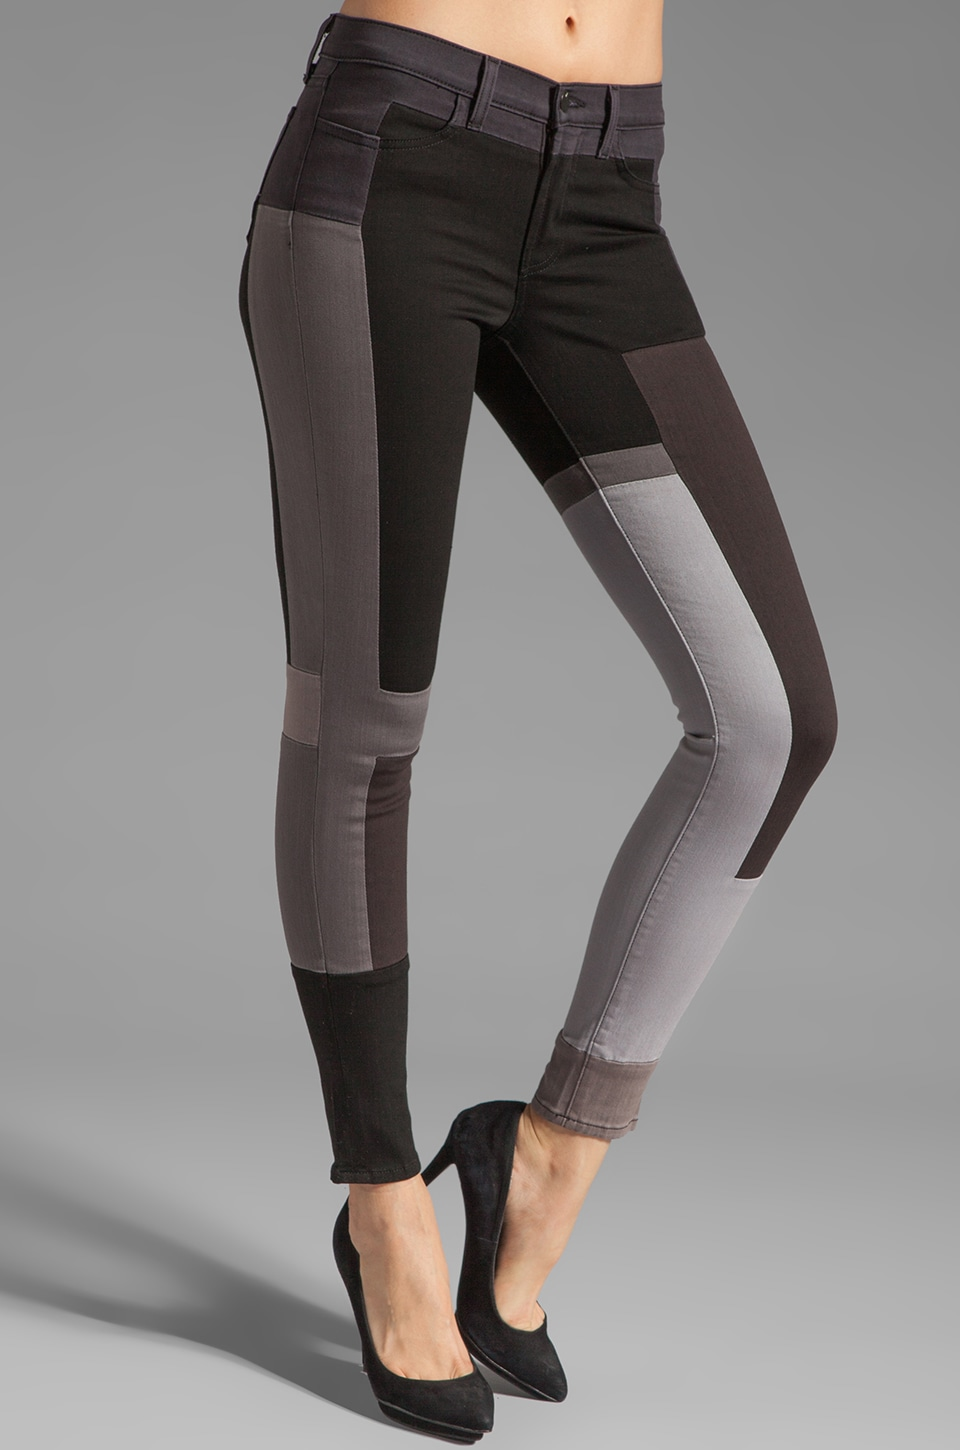 J Brand Color Block Skinny in Slick